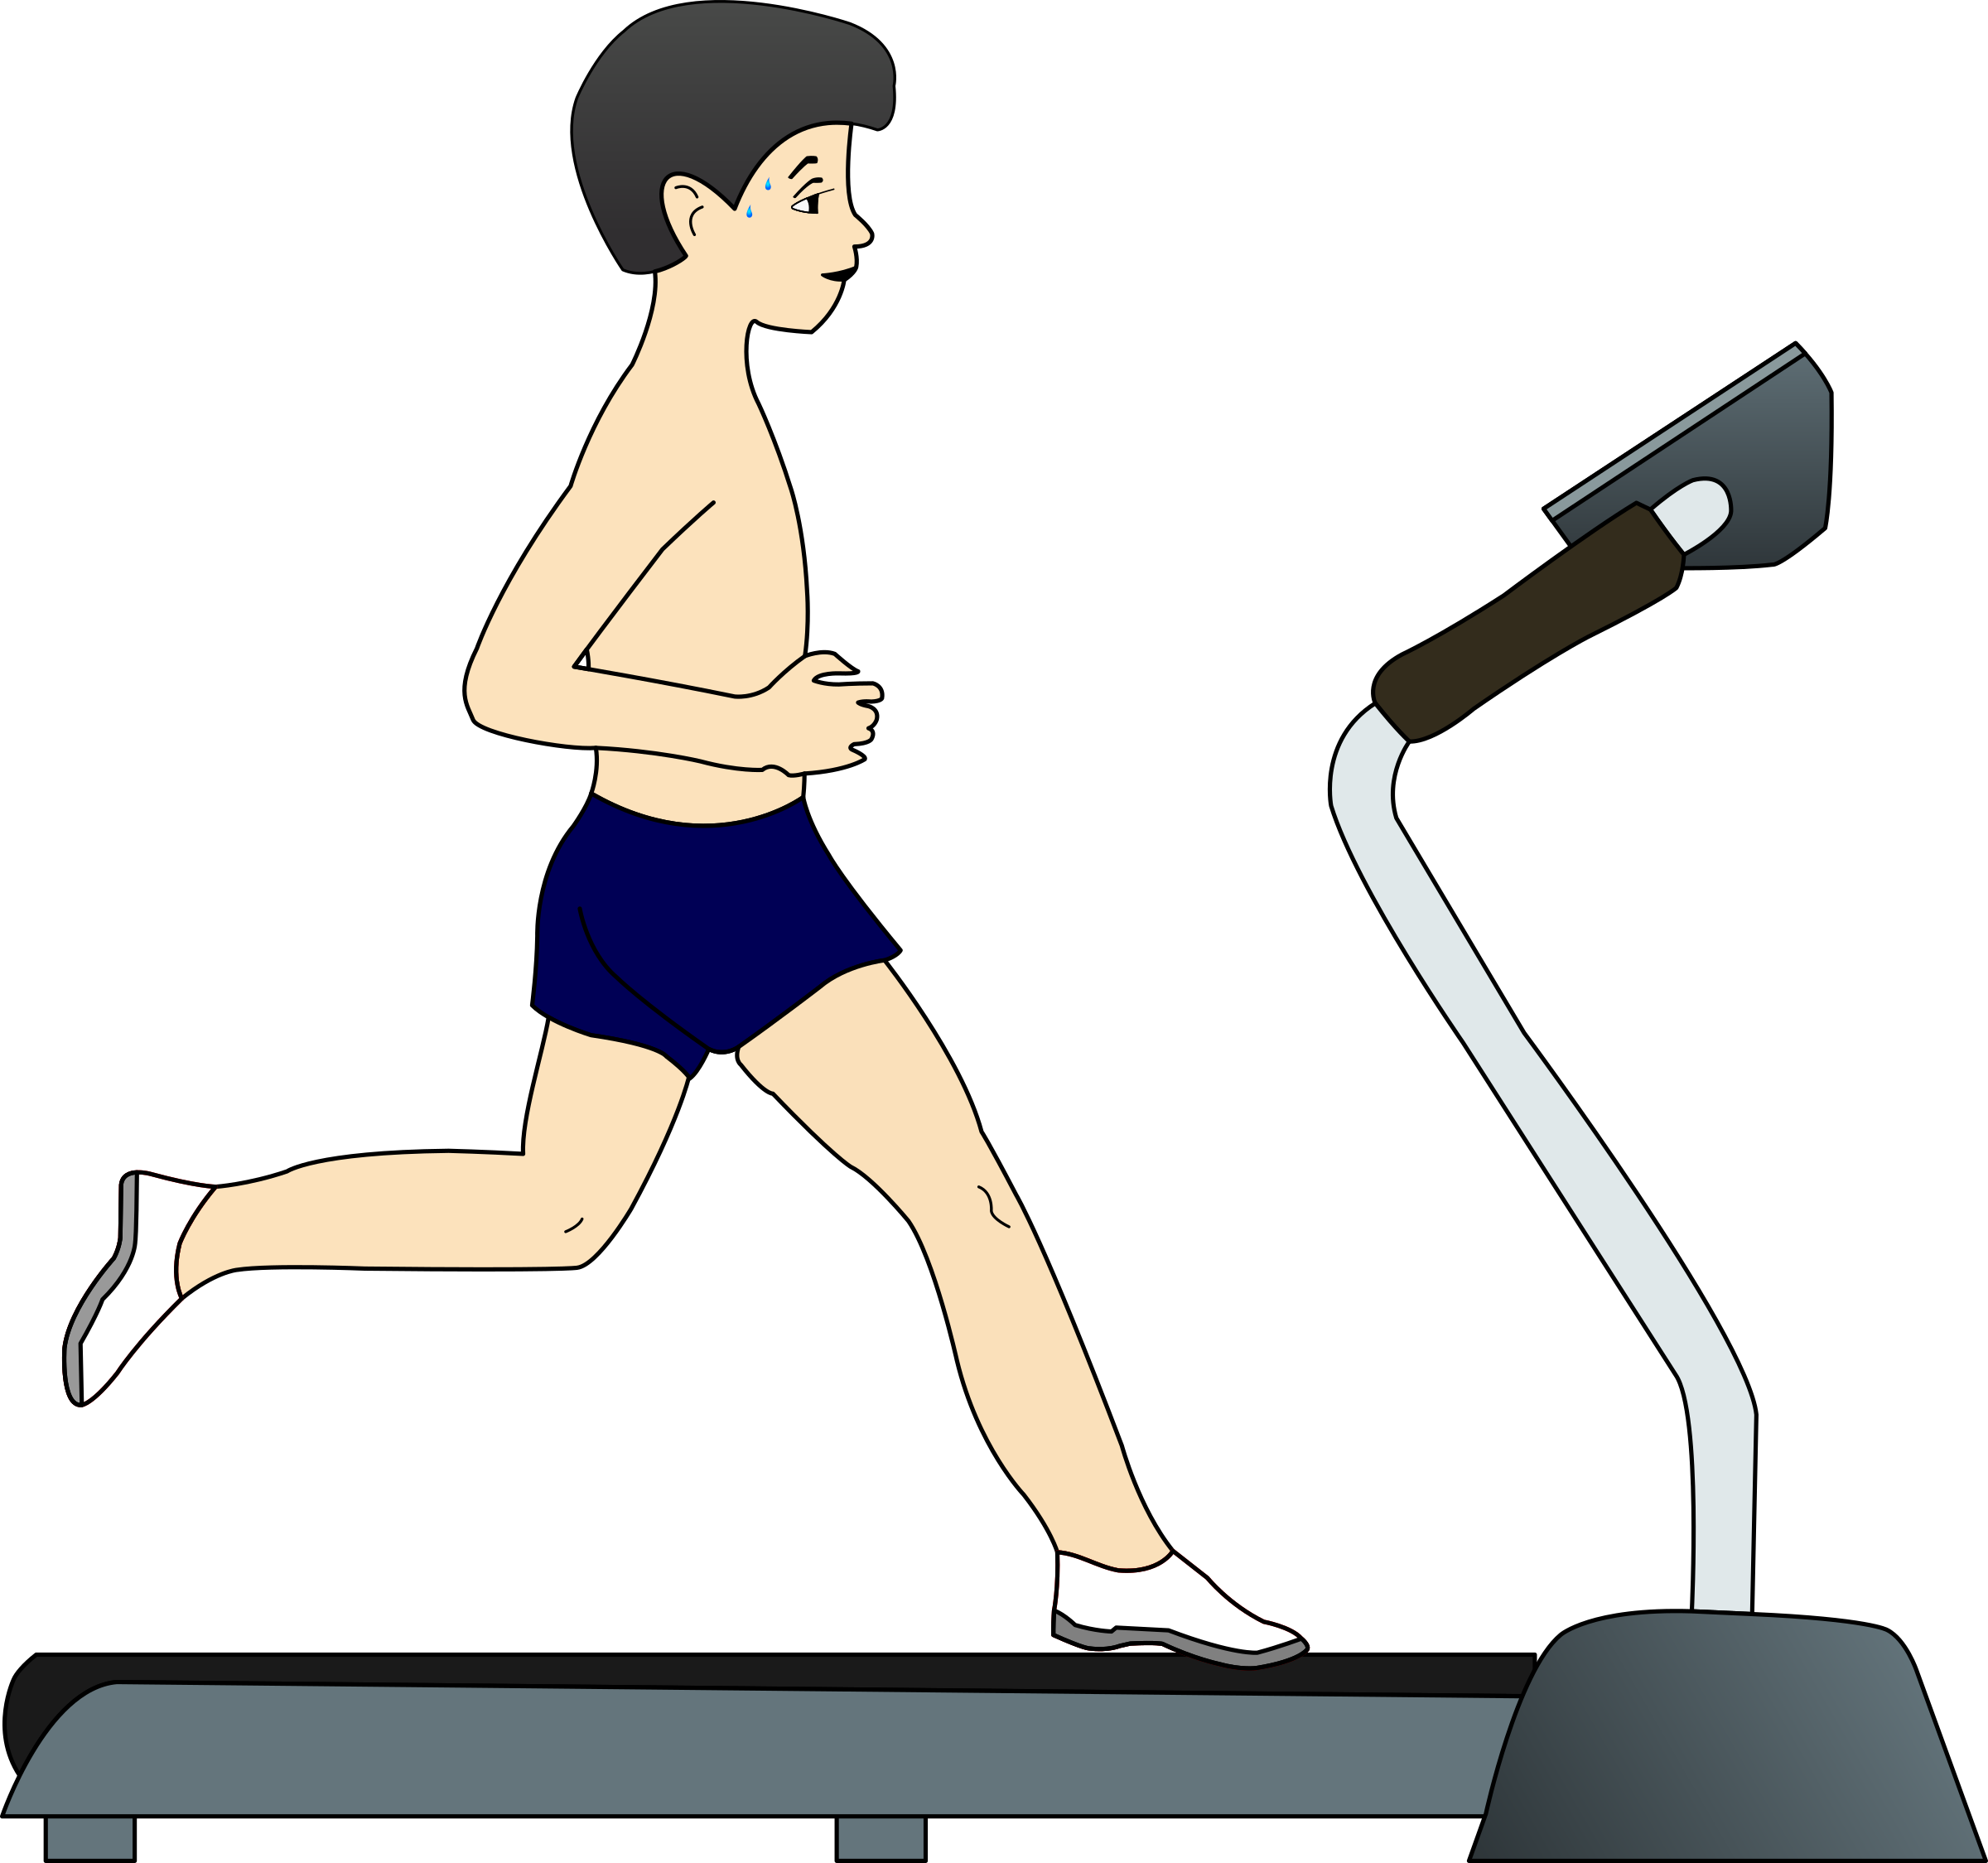 Boy running png. On treadmill icons free